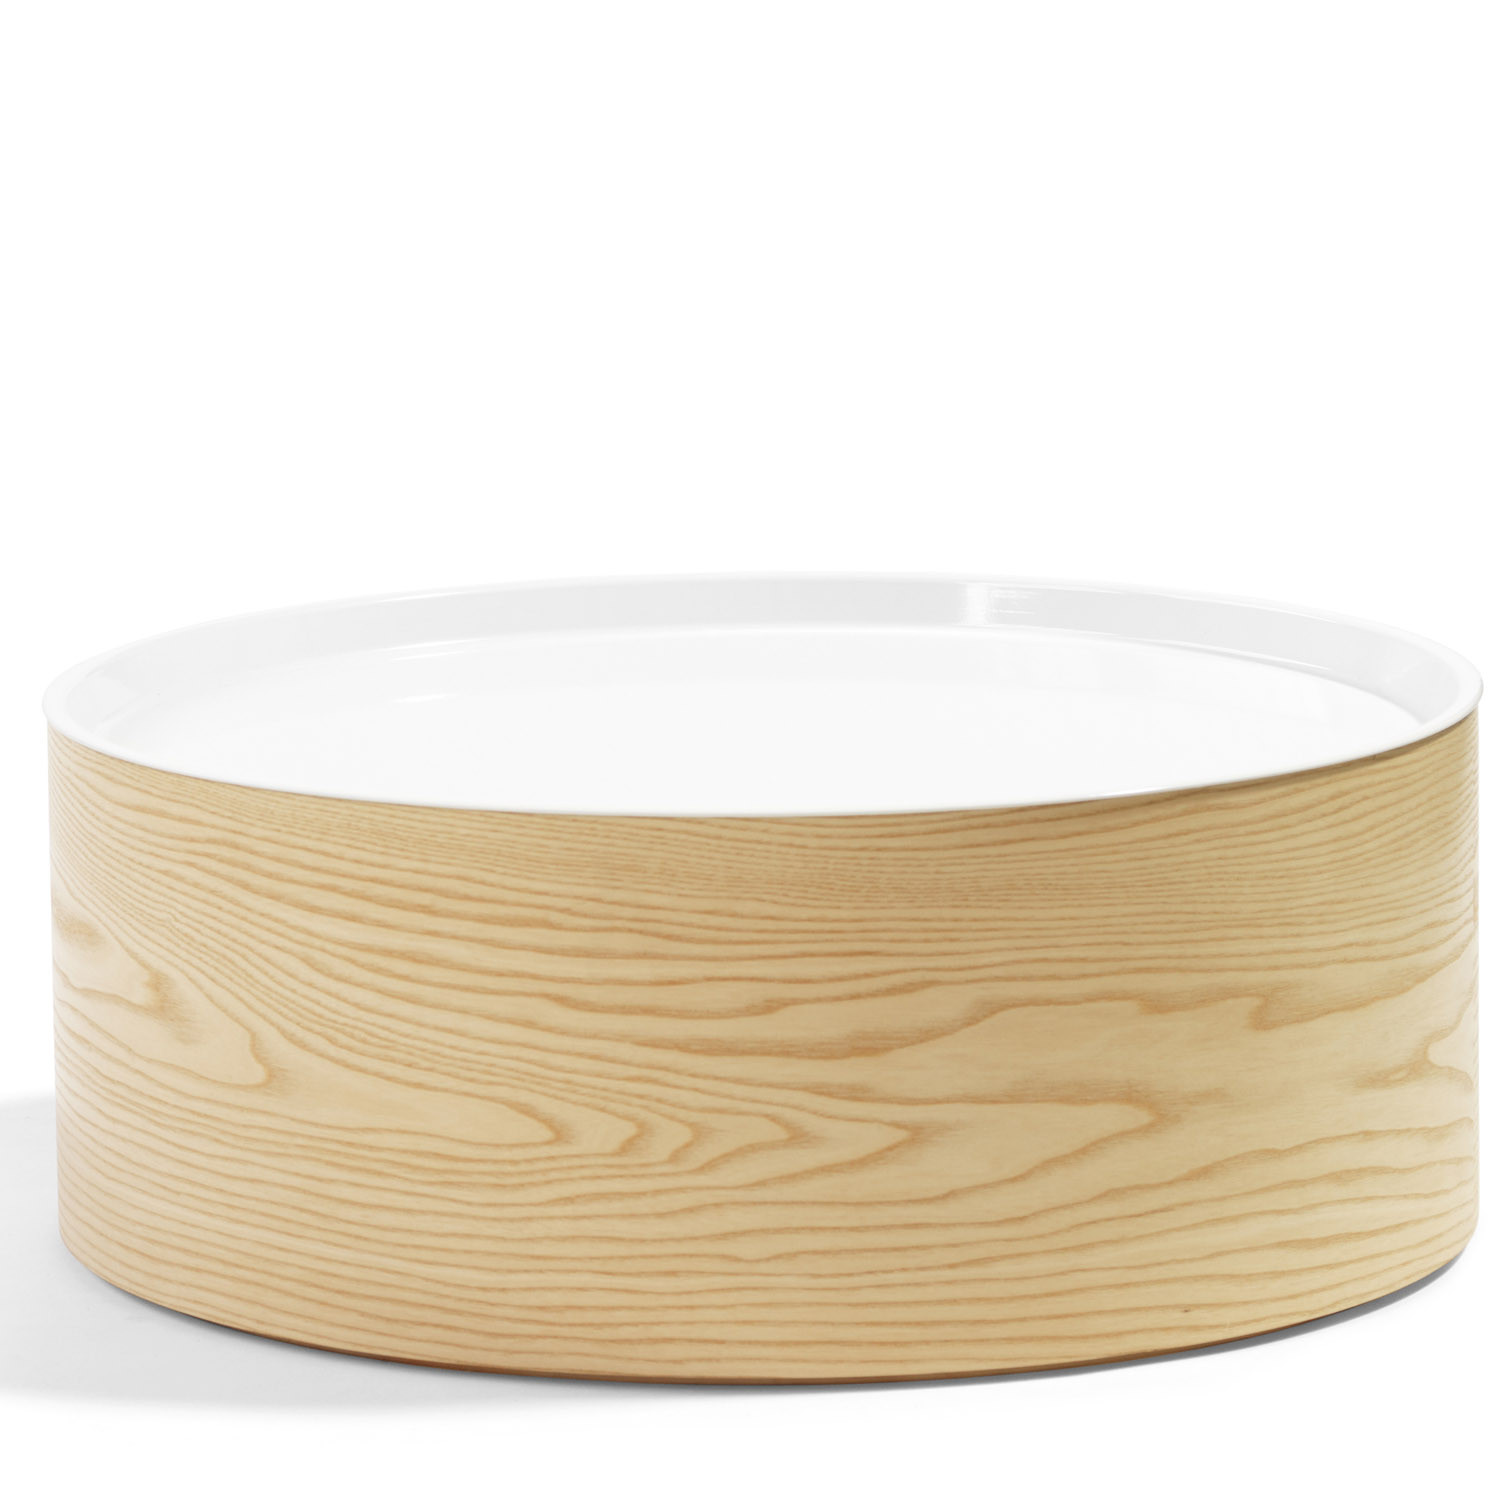 L25 Table by Cate and Nelson